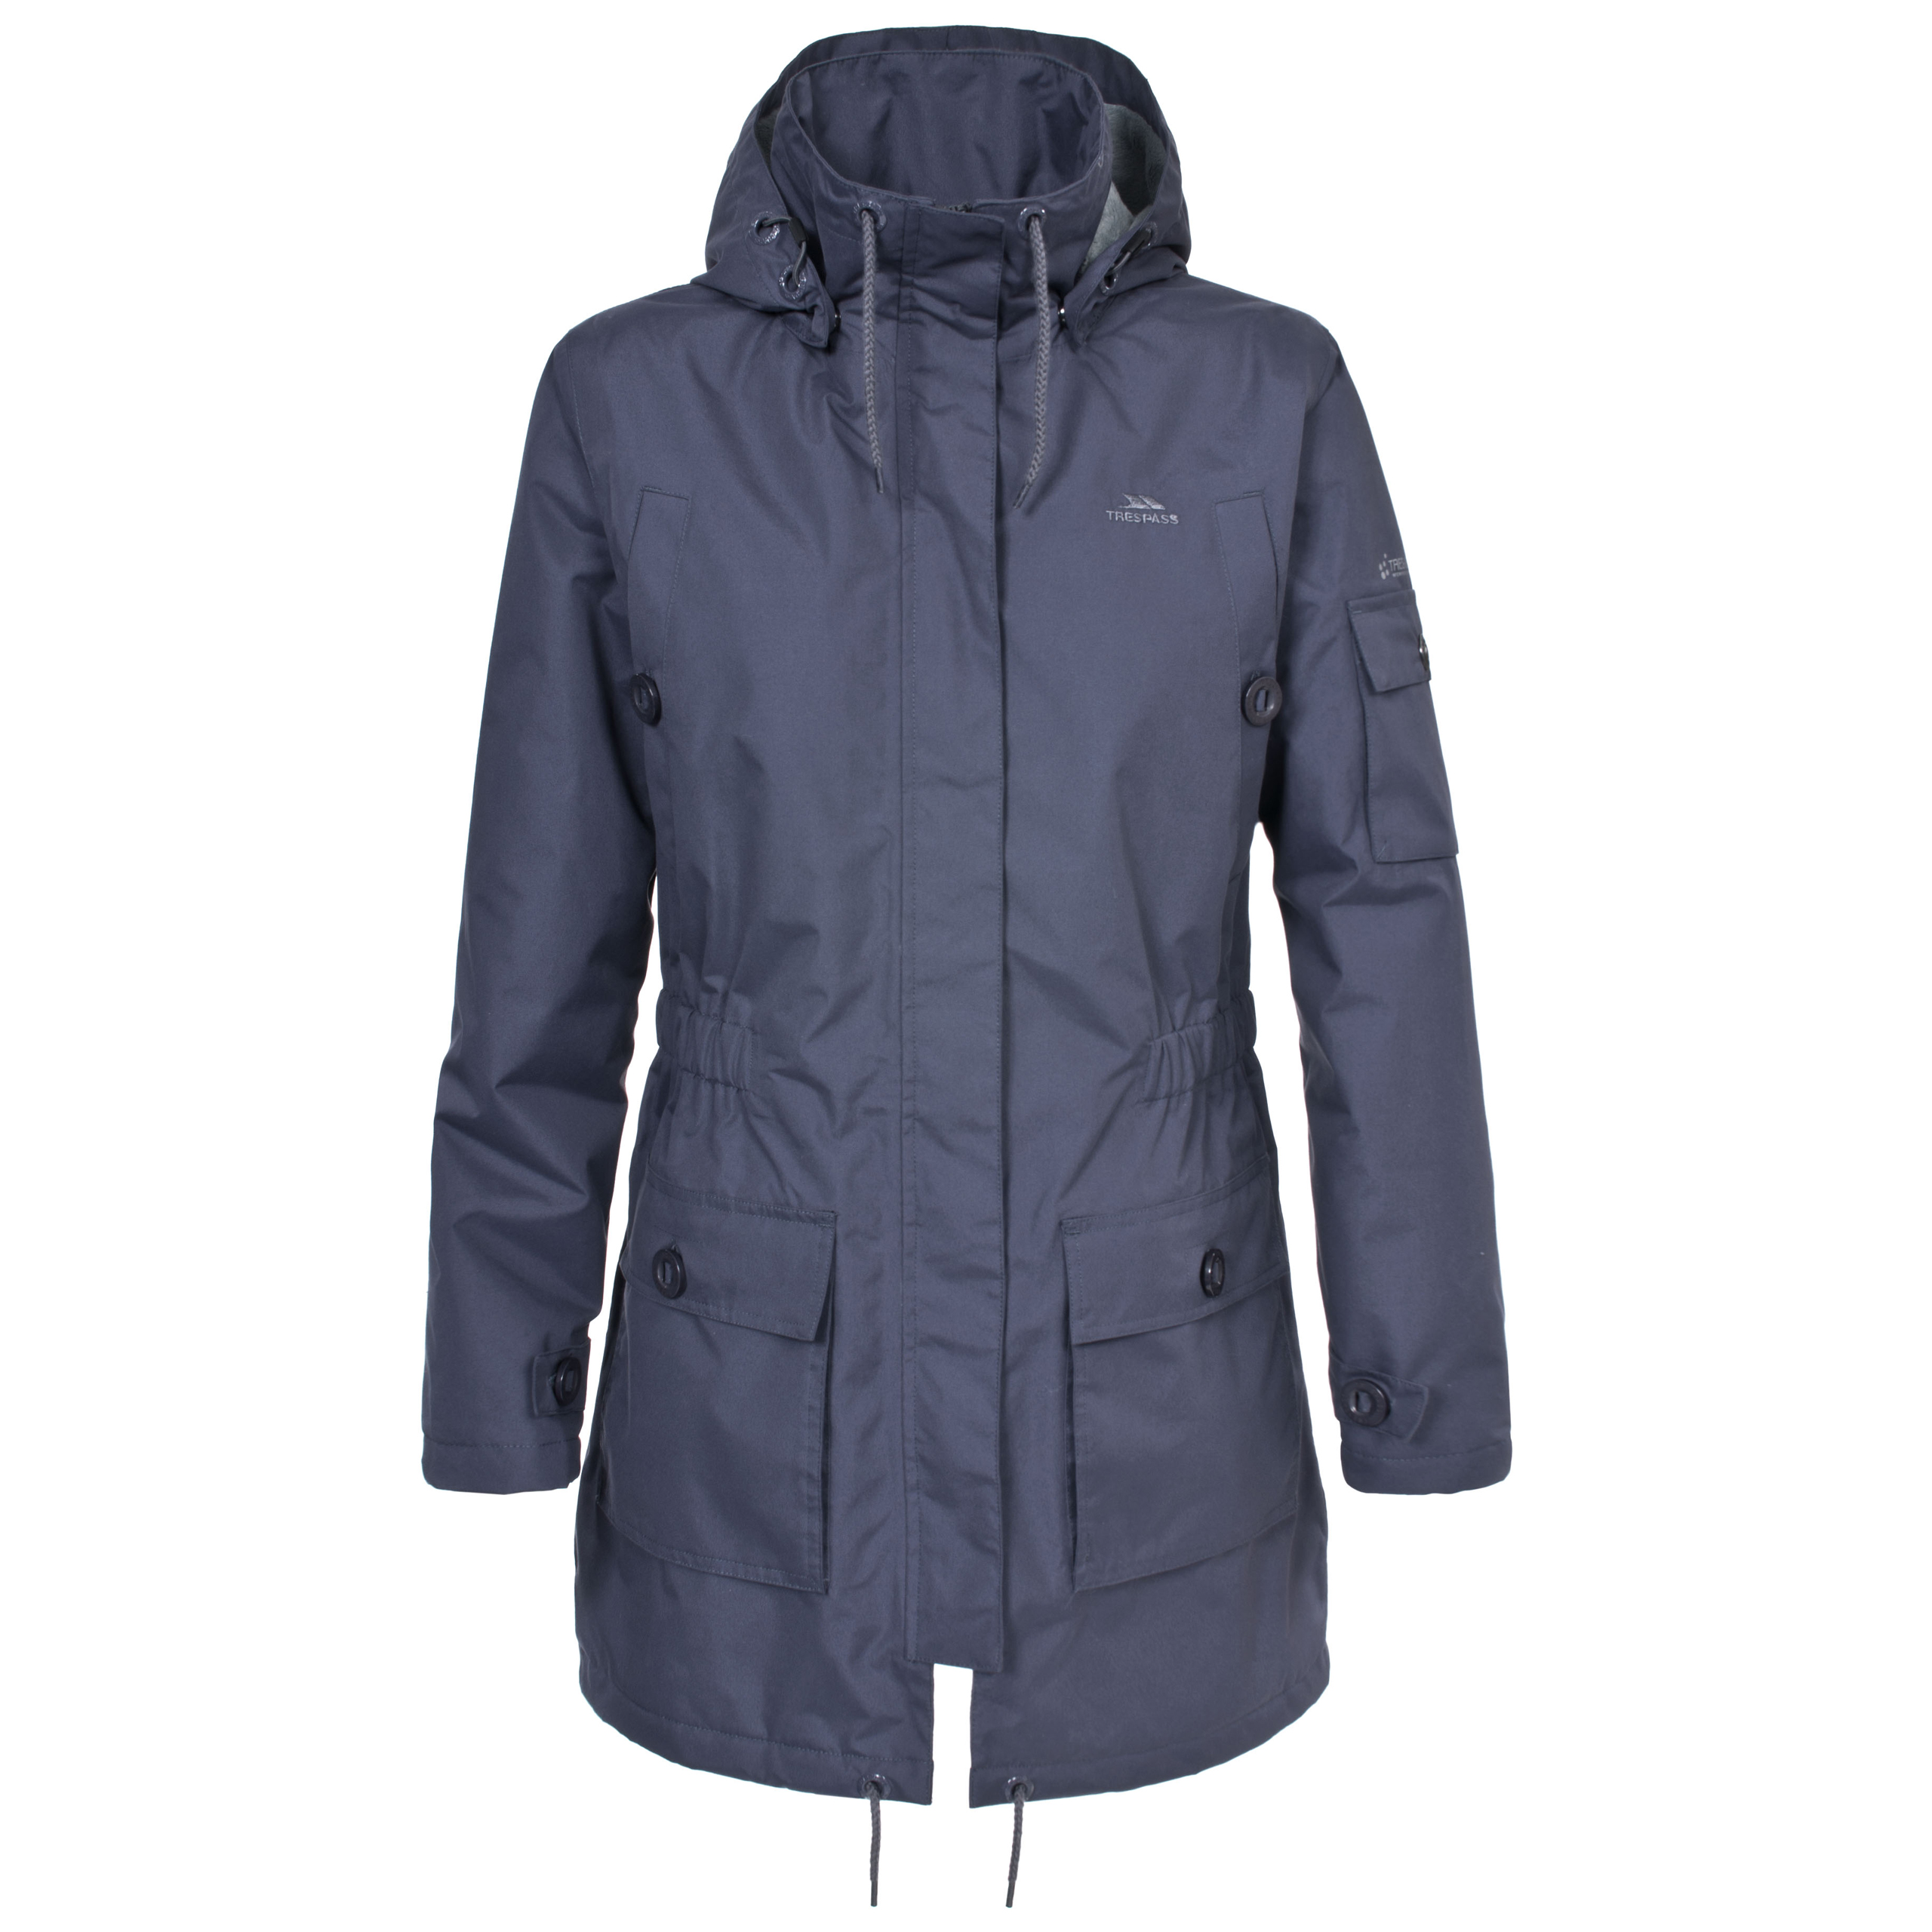 Women's Waterproof Jackets Our women's waterproof jackets come in a wide range of styles, each with varying degrees of technical specifications, including breathability and windproofing. Suitable for a whole host of outdoor activities, whether you're hiking up a mountain or simply popping to the shops we have jacket for the job.